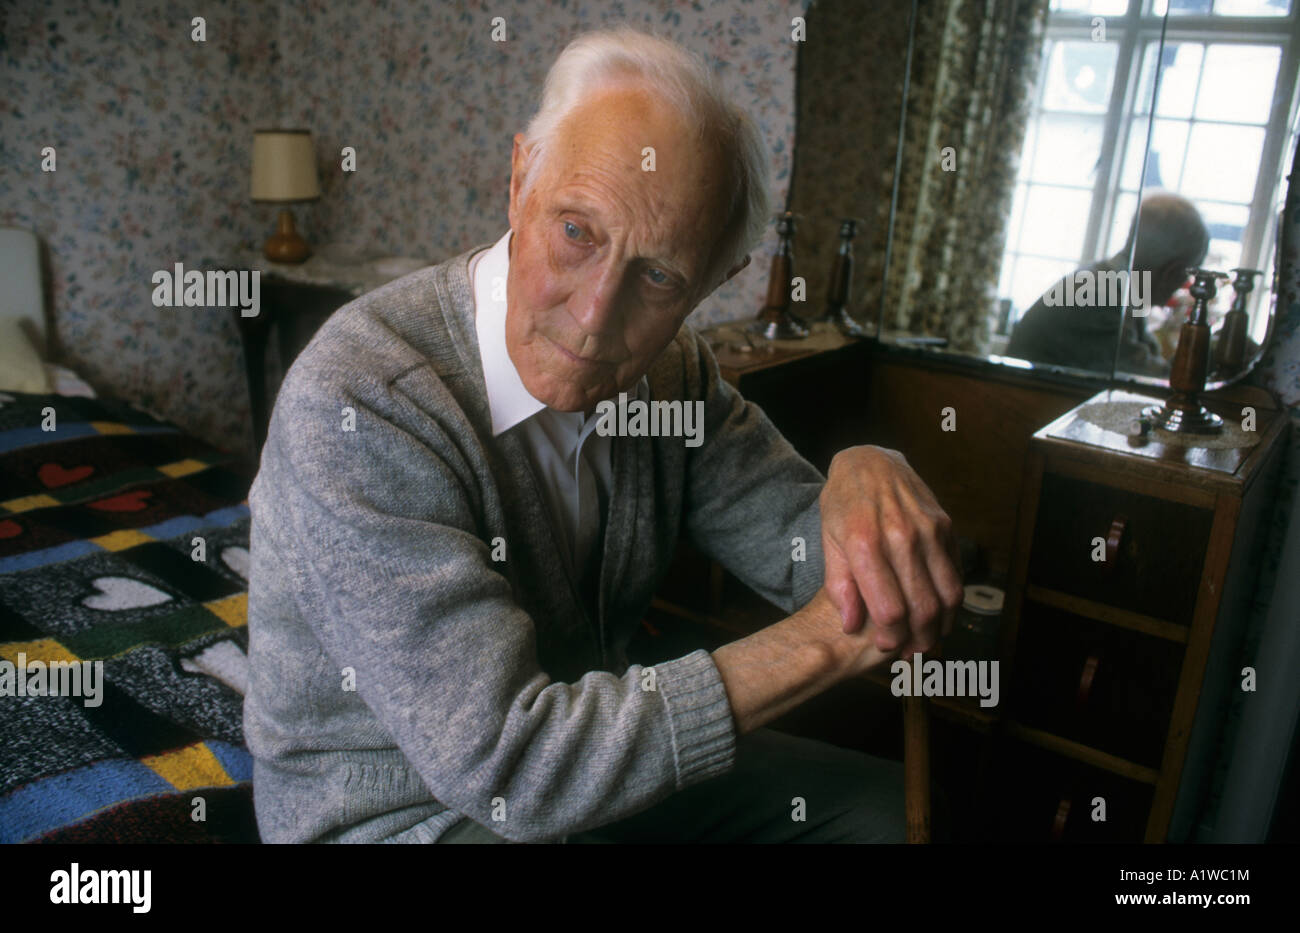 Old Age,Portrait Of A Senior Man In His Late Eighties - Stock Image